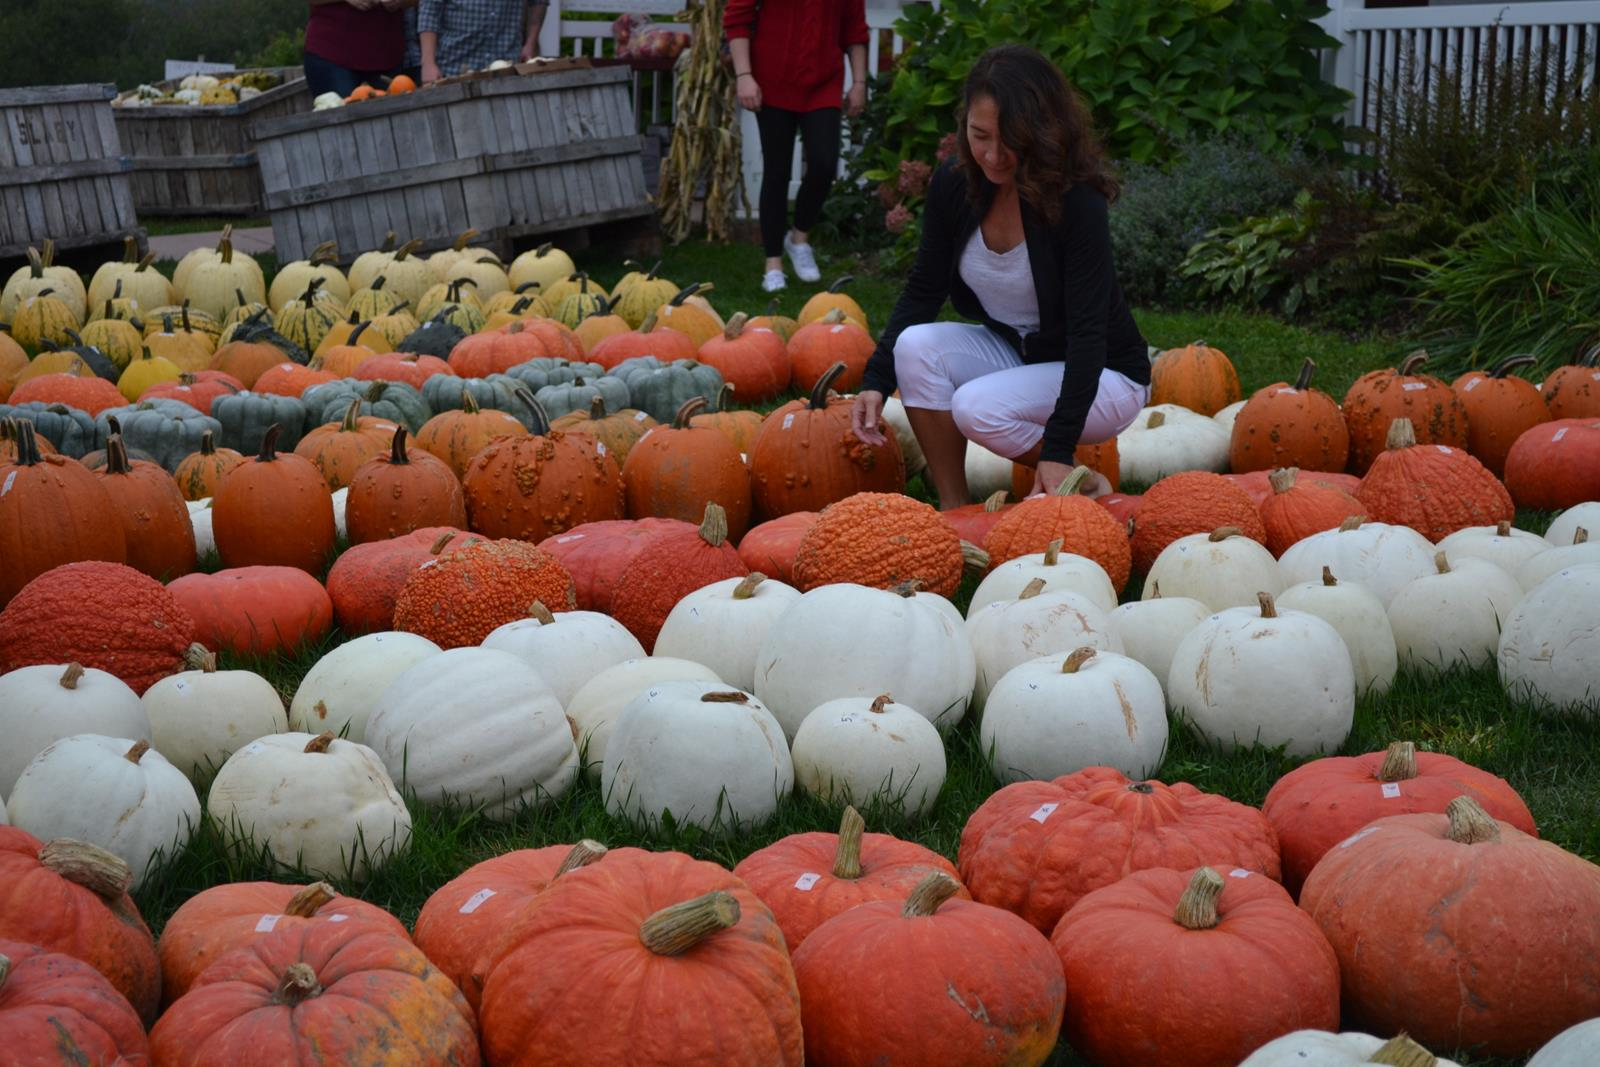 Pumpkins for sale at many of the Door County markets make for colorful shopping